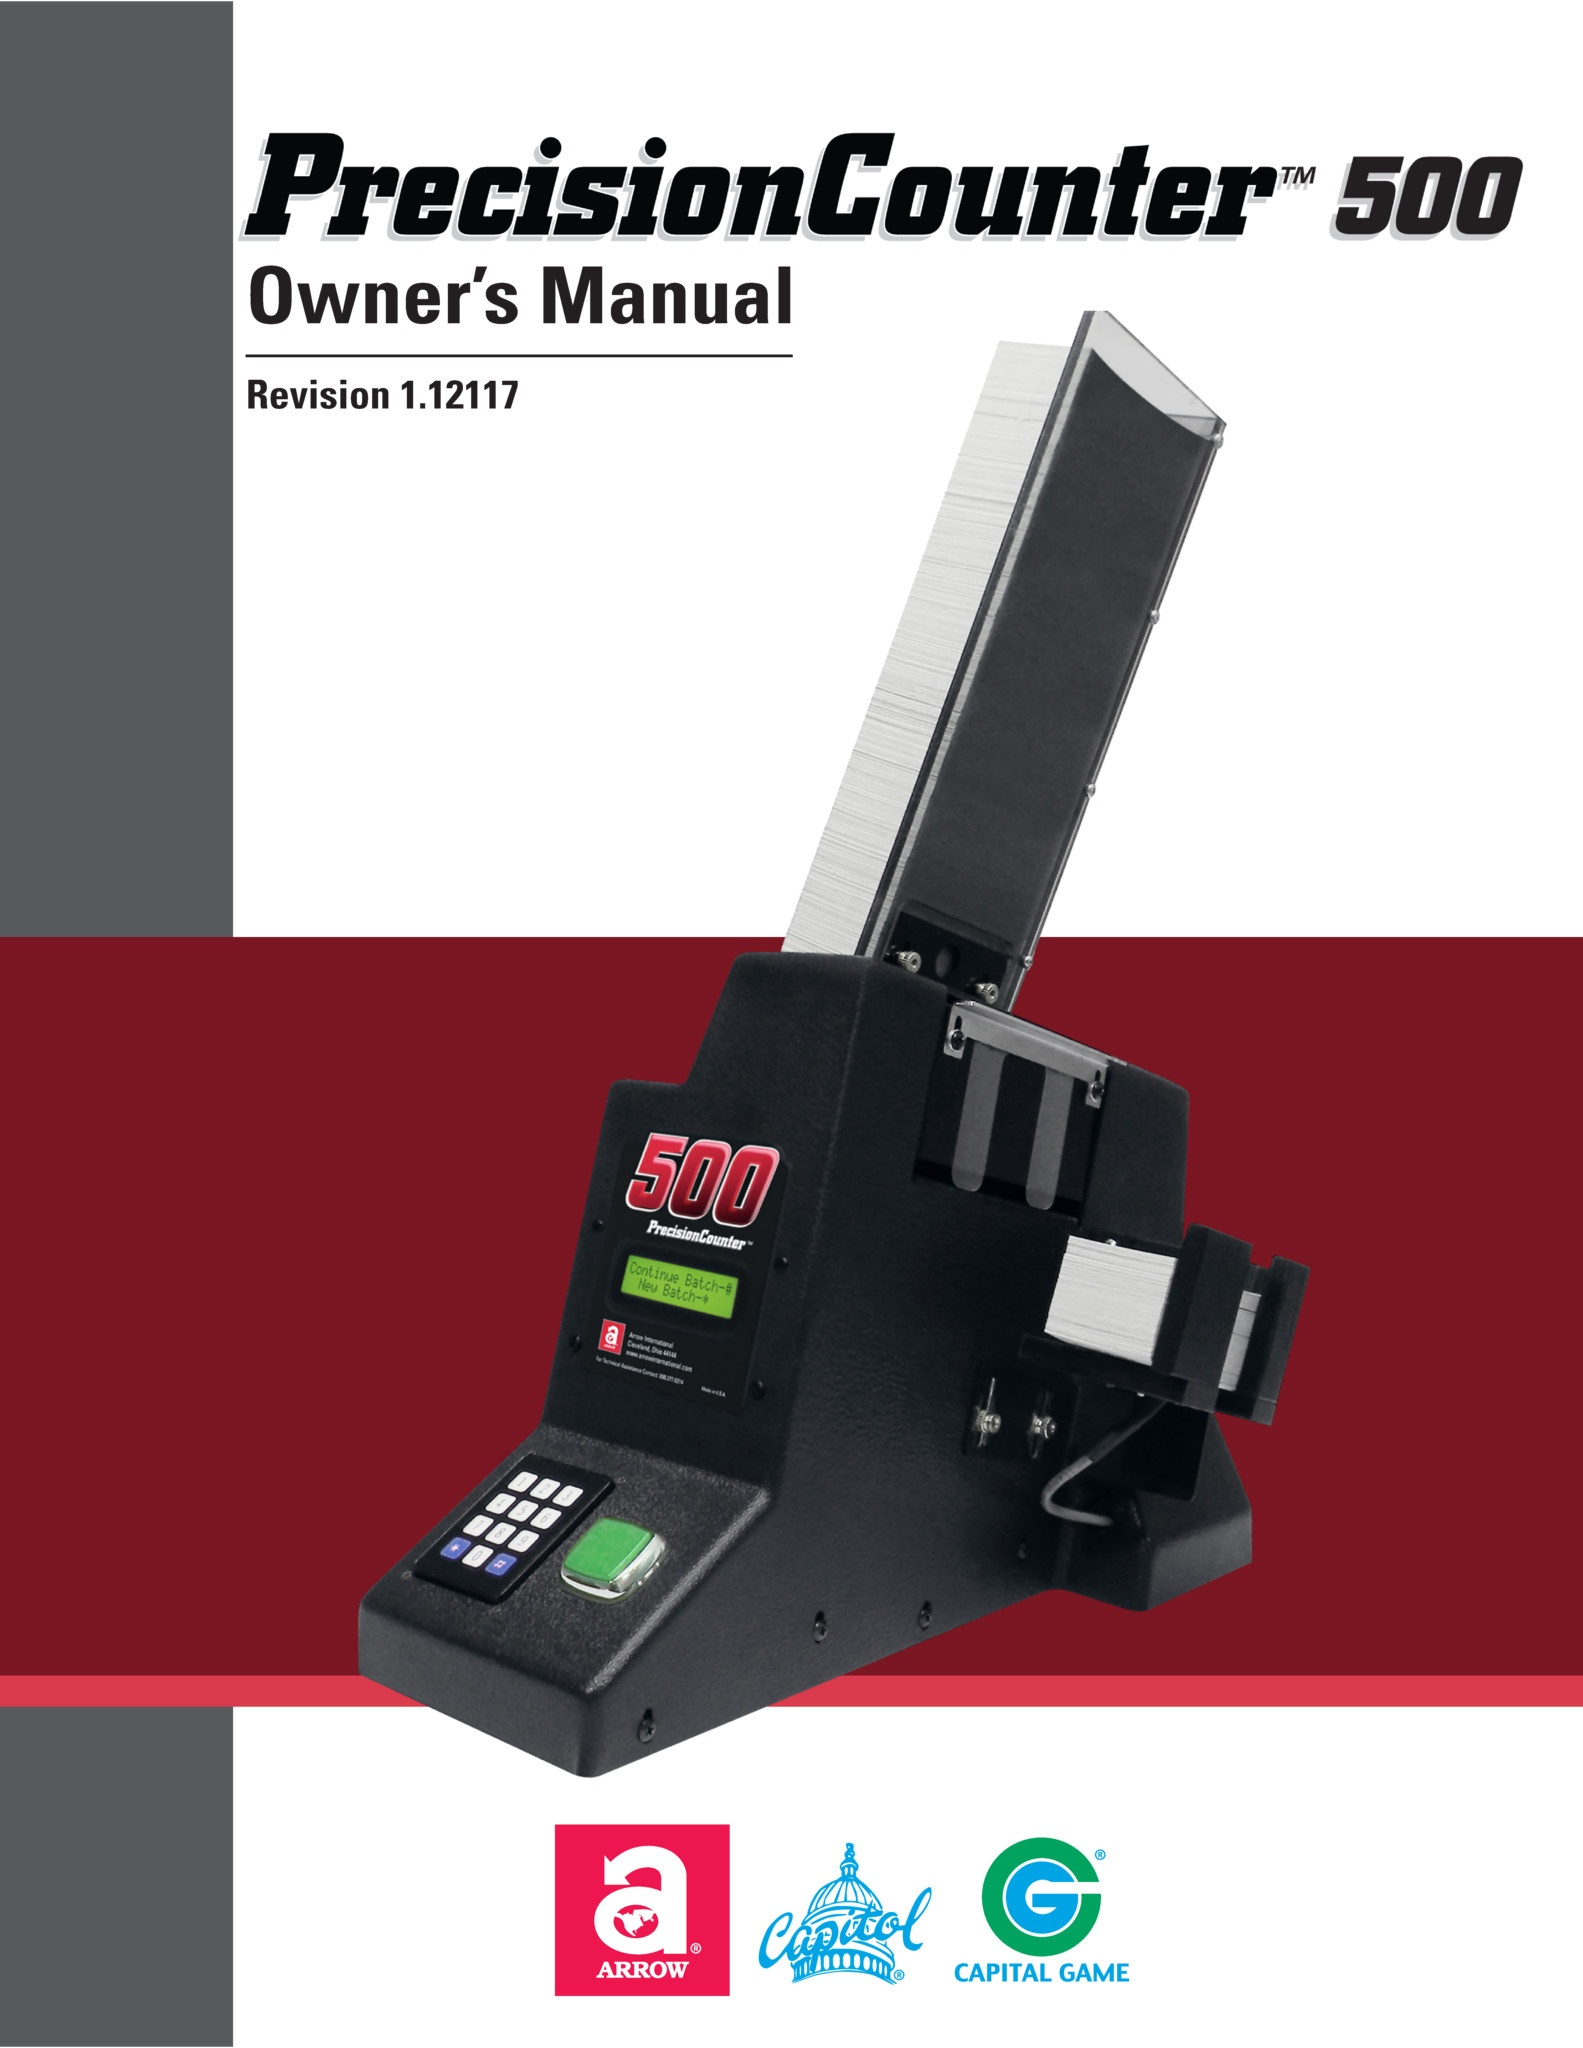 PrecisionCounter500 Manual Equipment Manuals